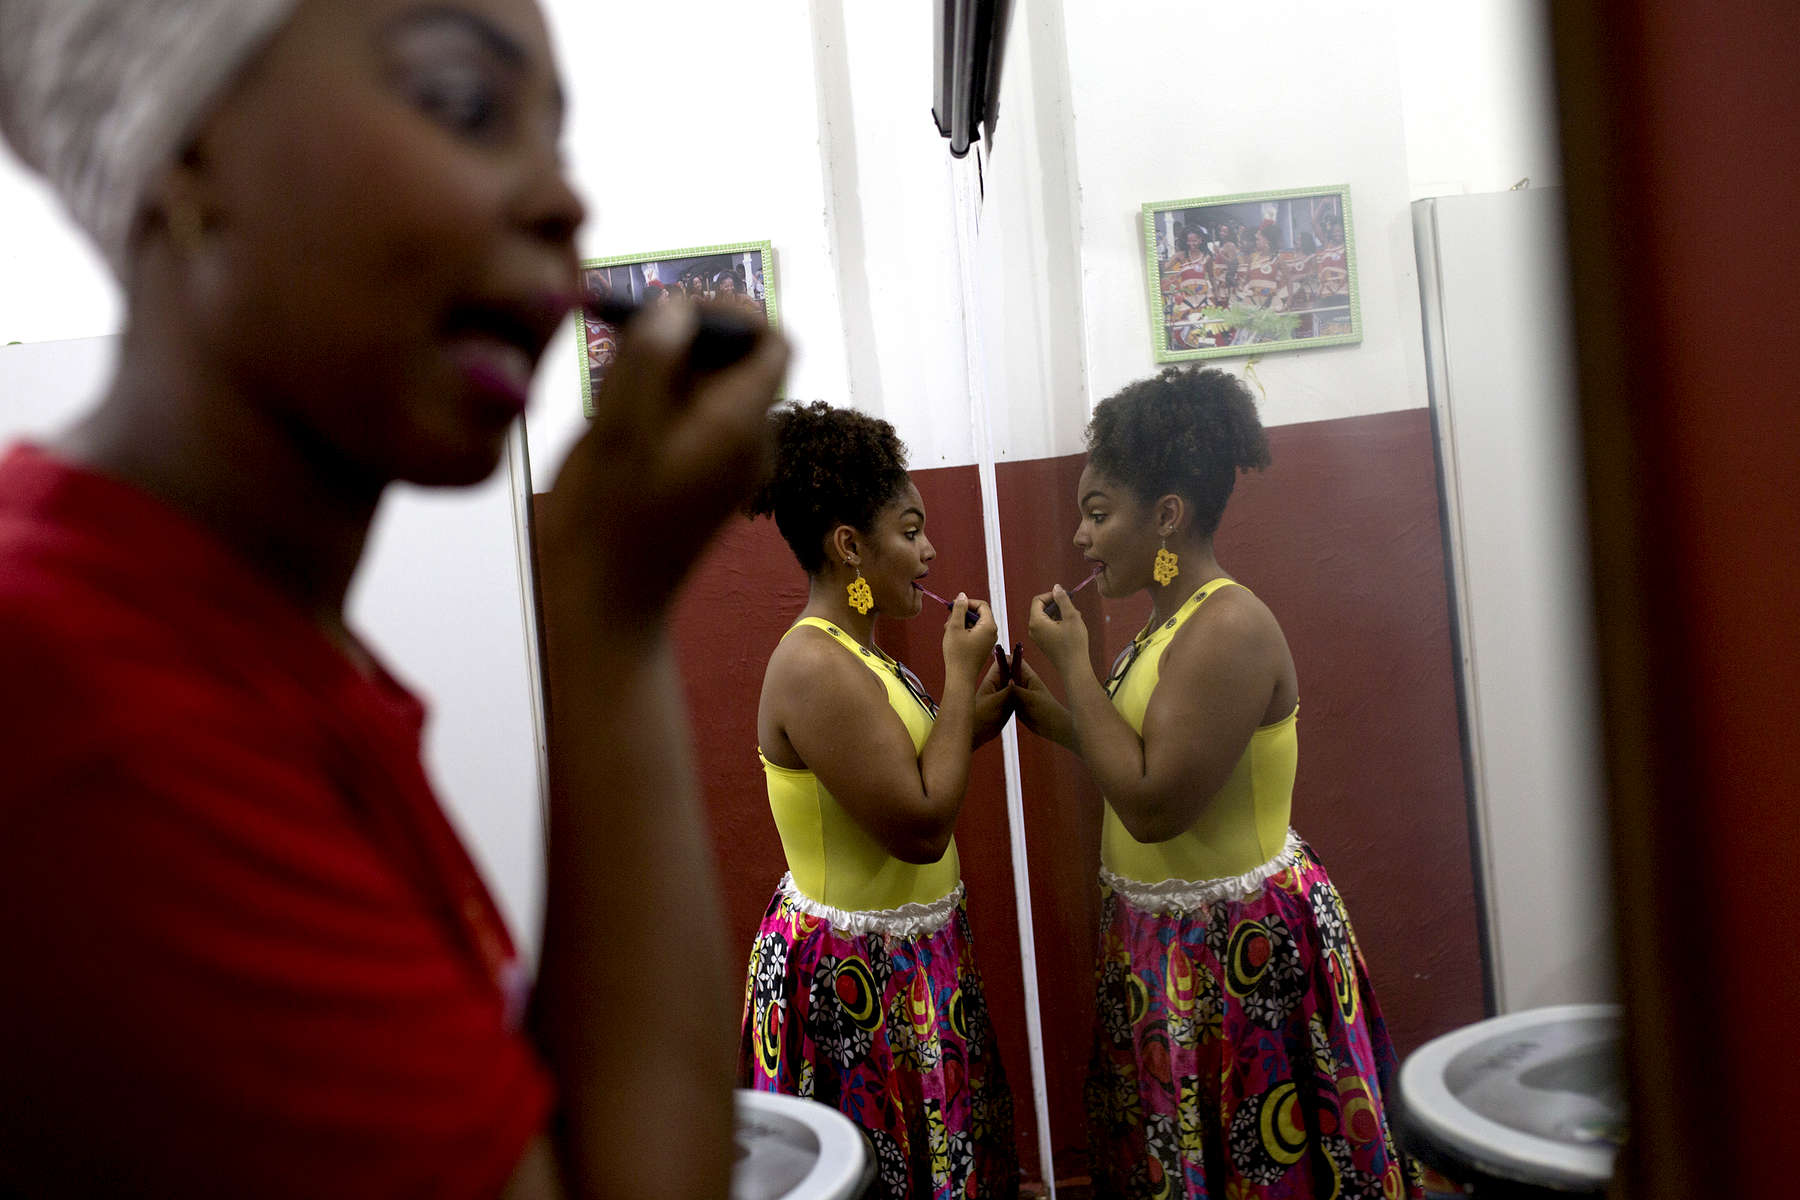 Carine Alves Teles dos Santos and Larissa Gabriele Rogerio put on makeup before a performance at Project Didá in Salvador's historic neighborhood, Pelourinho.